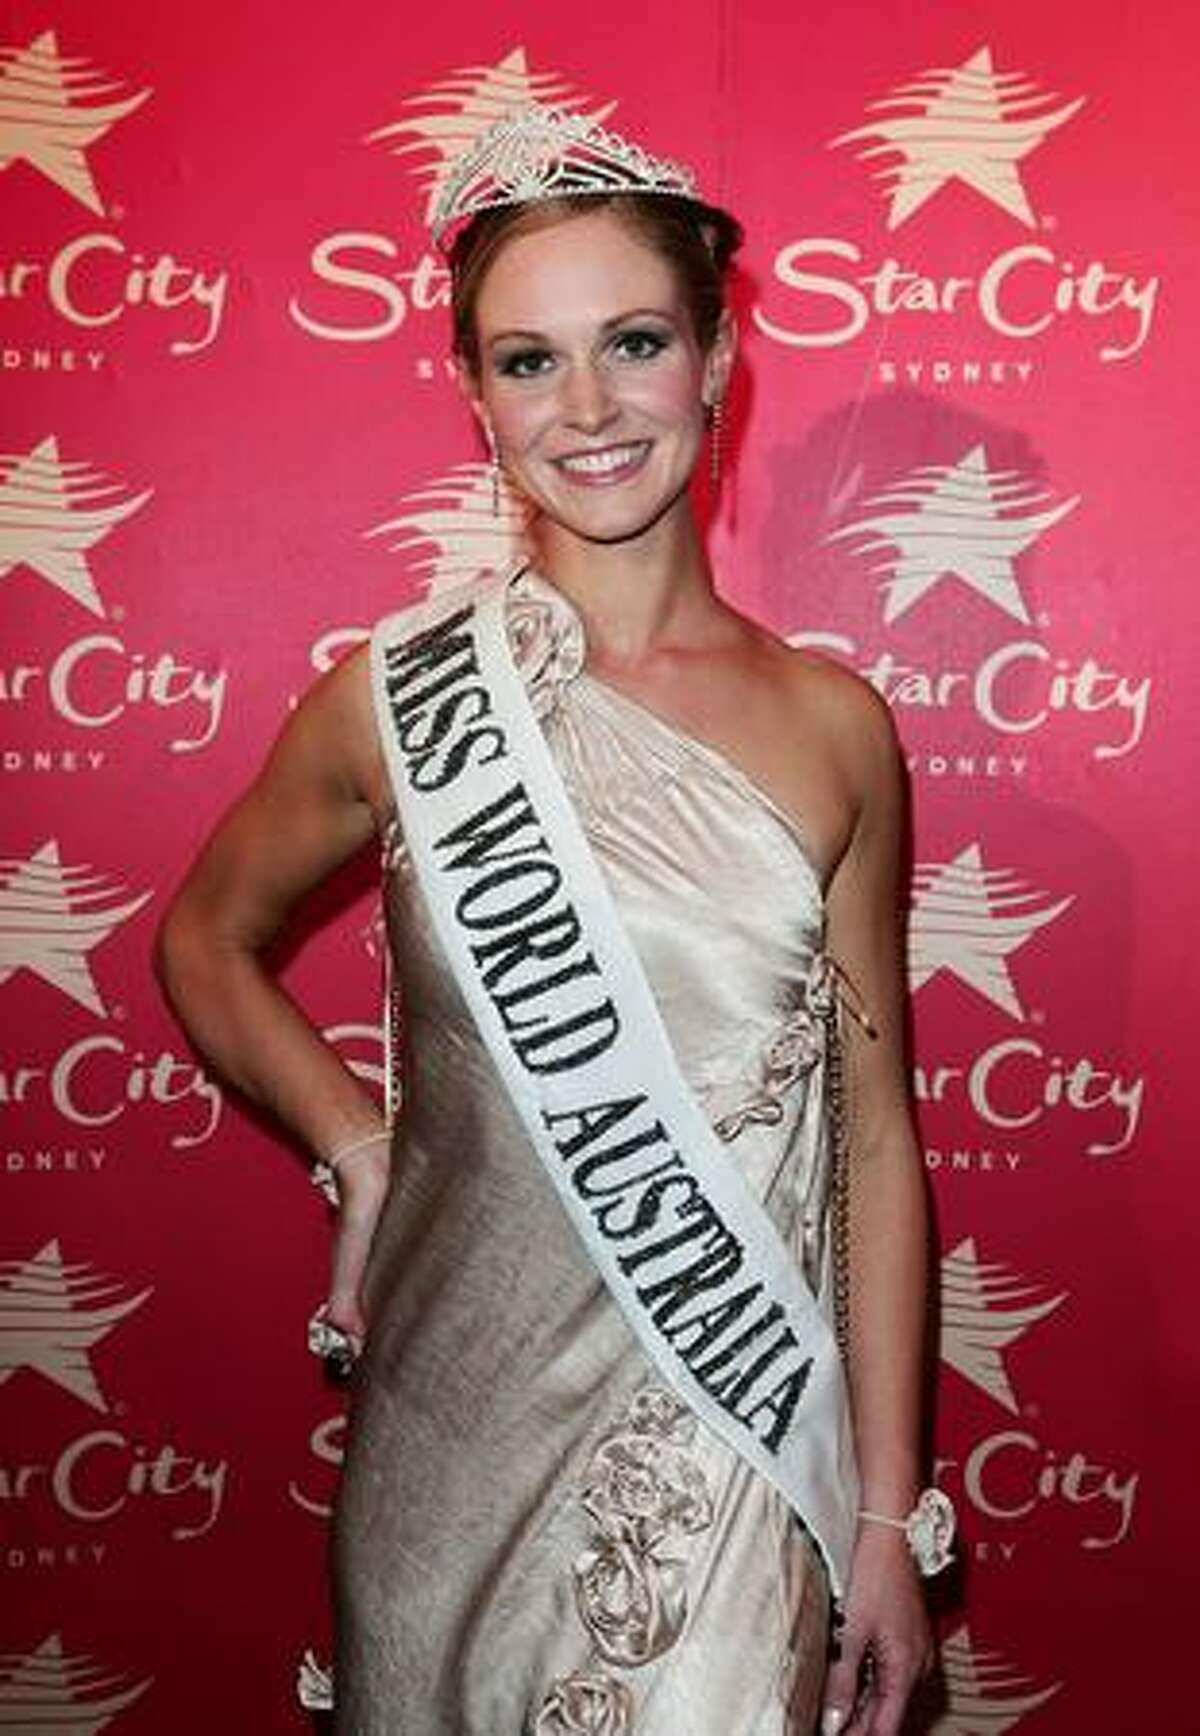 Winner of 2009 Miss World Australia Sophie Laver poses at the ceremony at Star City in Sydney, Australia.